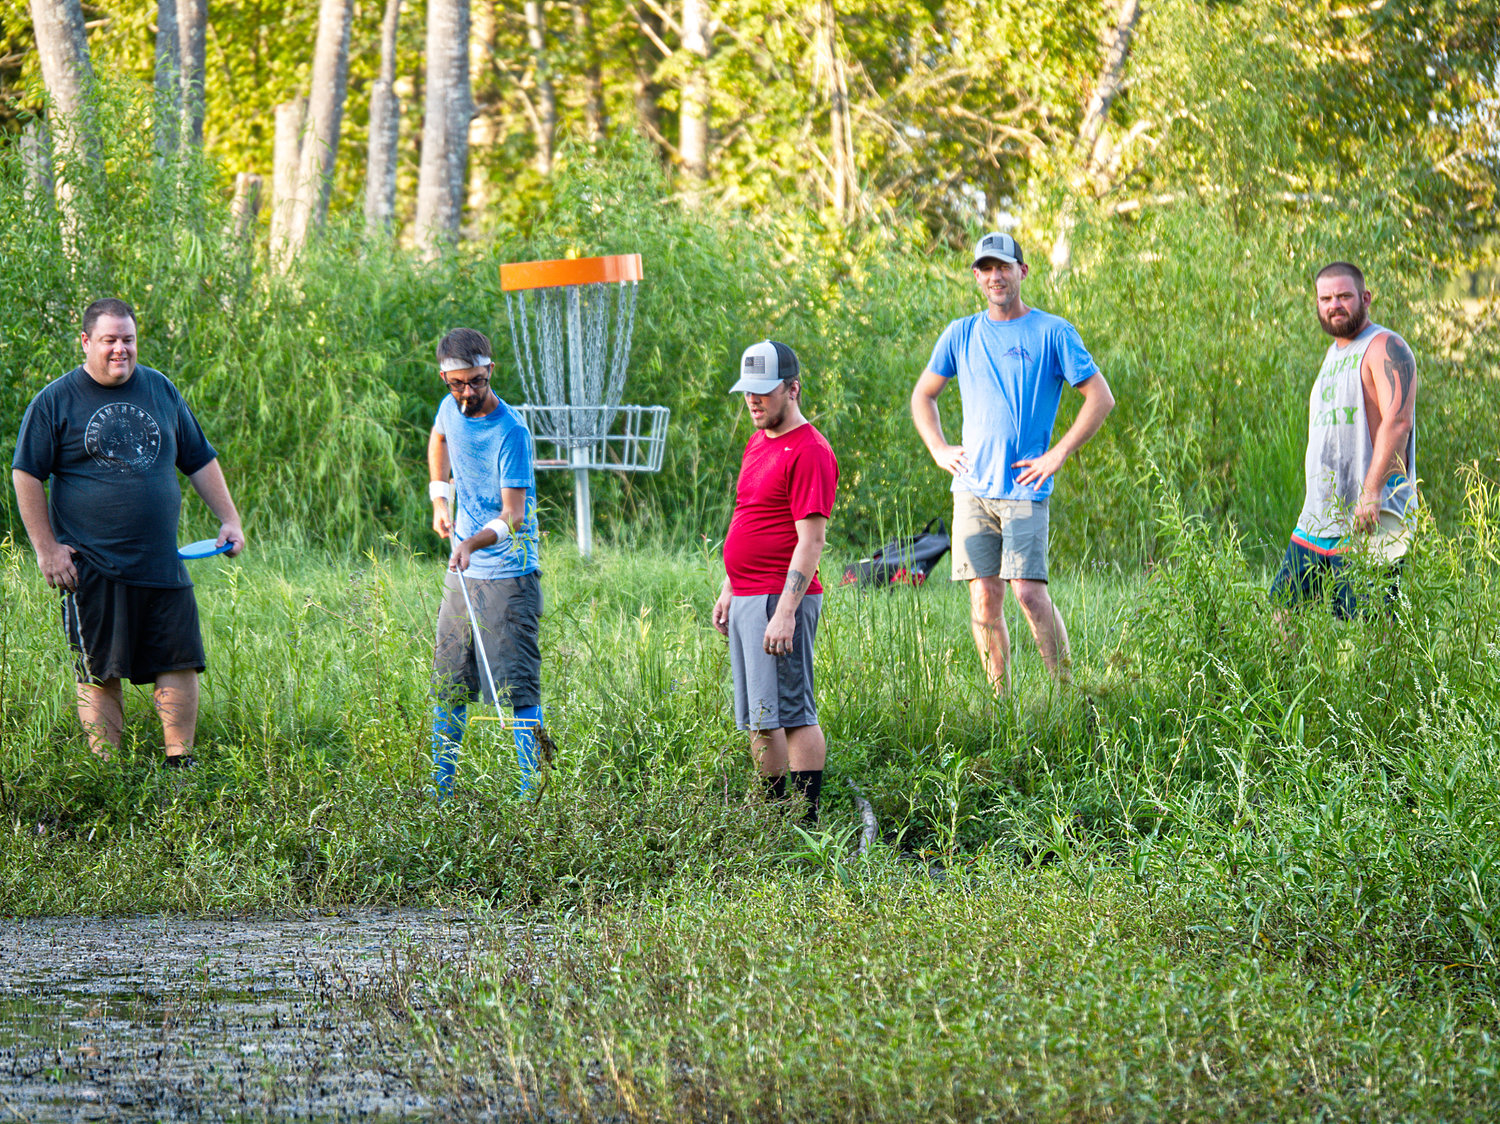 Hooked, Offline, SinkerDisc golfers try to rescue a putter from Grandpa's Pond next to a hole on The Preserve disc golf course Monday evening at the Mineola Nature Preserve.